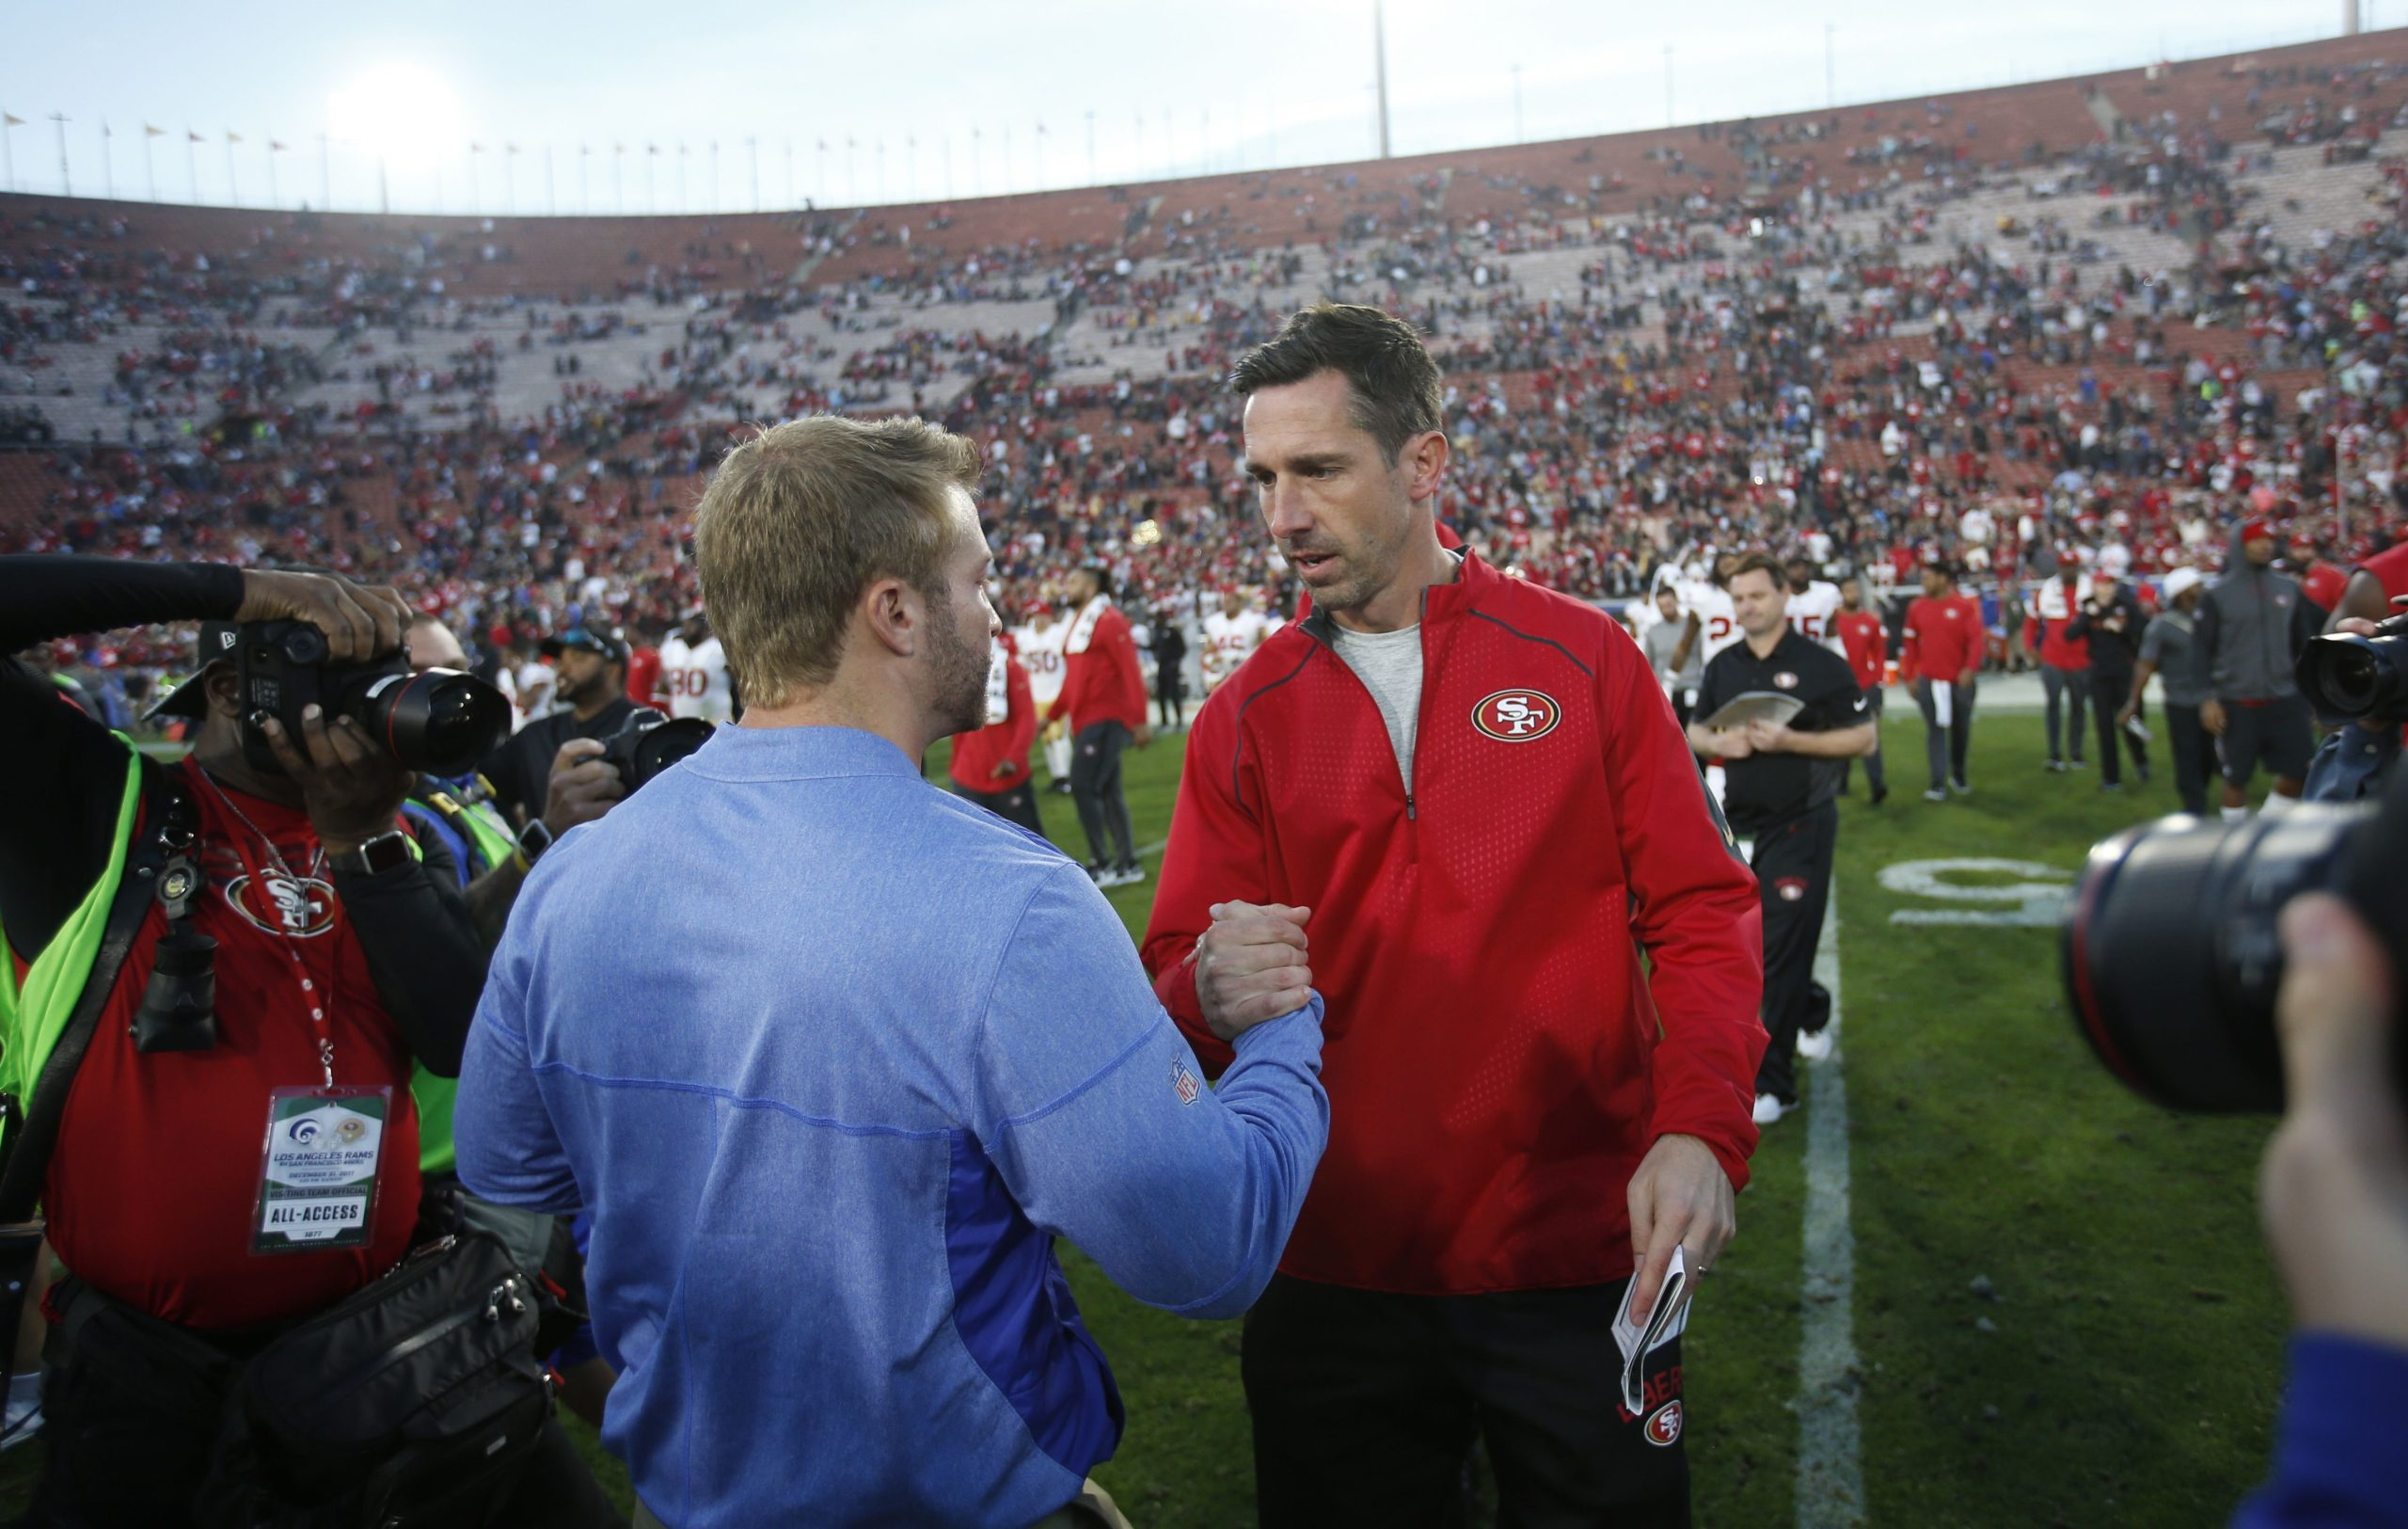 Latest Sports News: Move over, McVay: Why teams will be trying to find the next Kyle Shanahan – Yahoo Sports